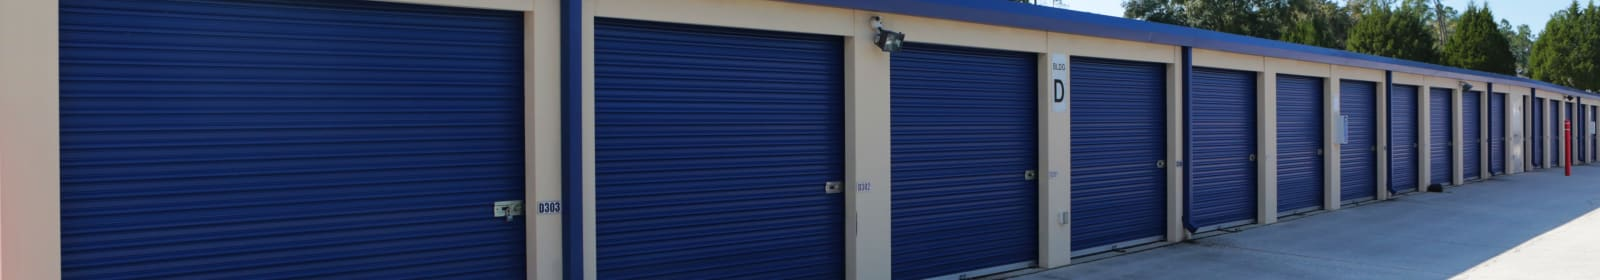 Midgard Self Storage units in Lutz, Florida